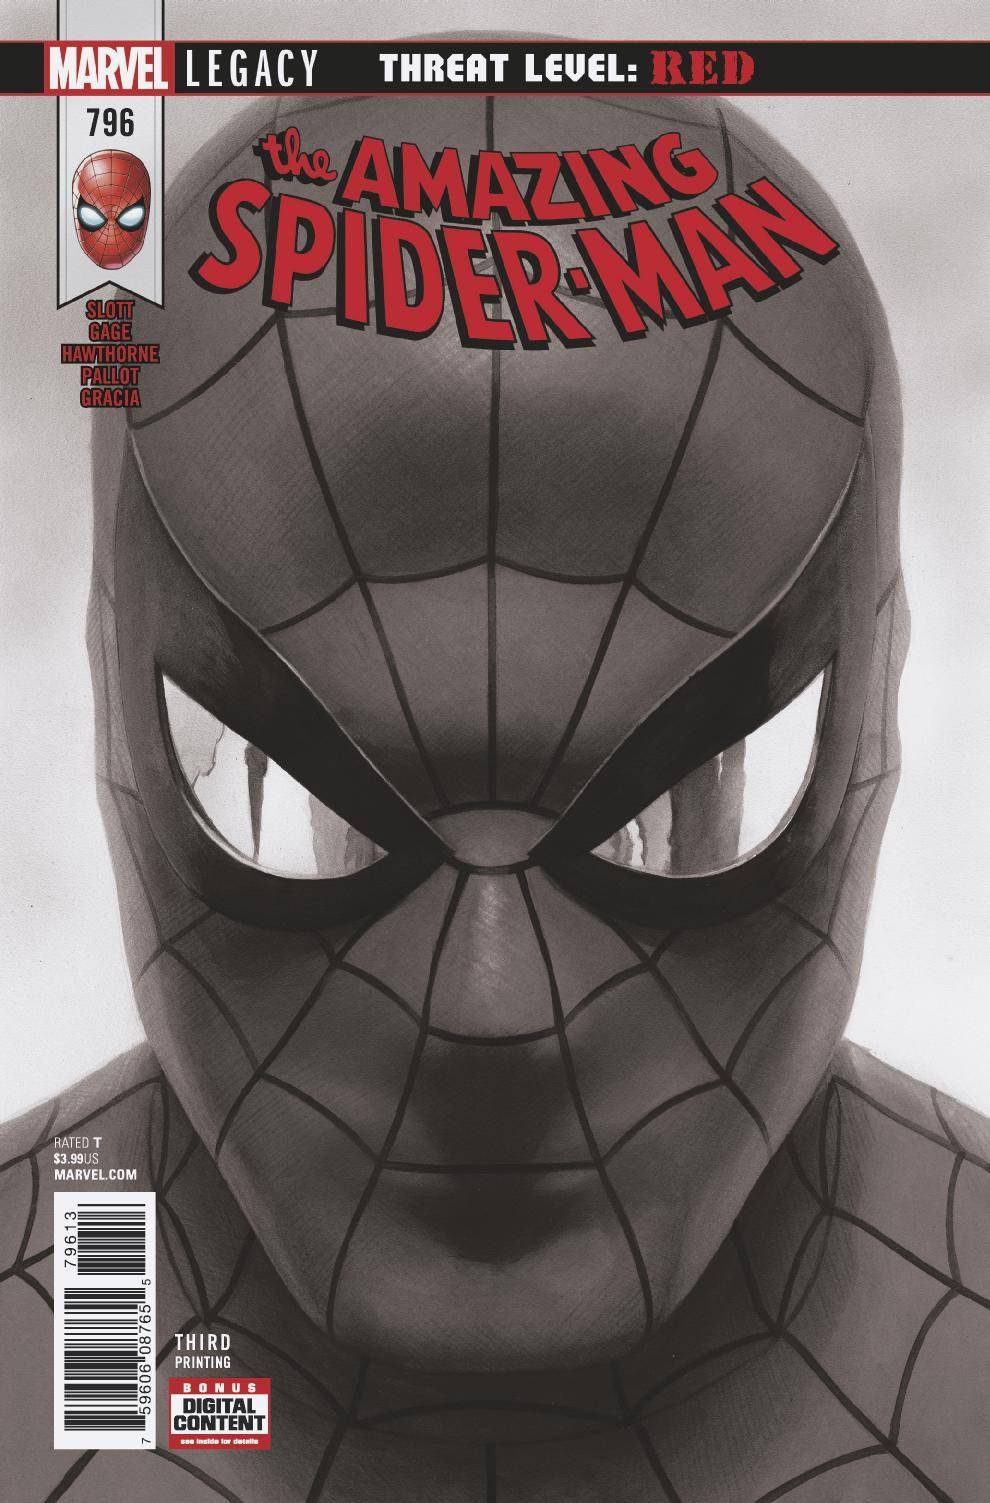 04/18/2018 AMAZING SPIDER-MAN #796 ALEX ROSS B & W 3RD PTG VARIANT